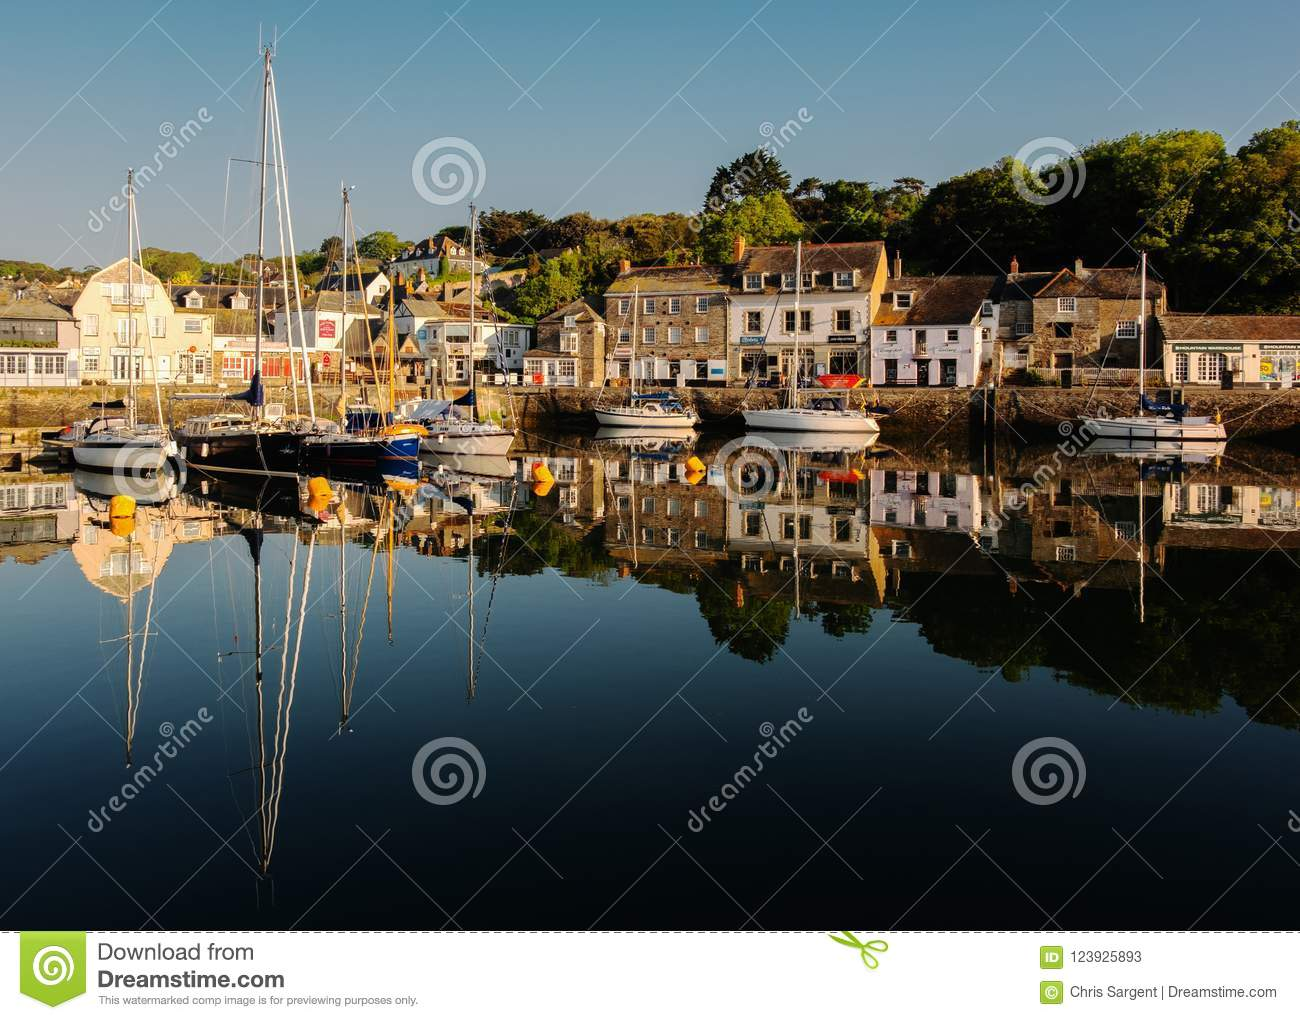 Padstowhaven in Cornwall